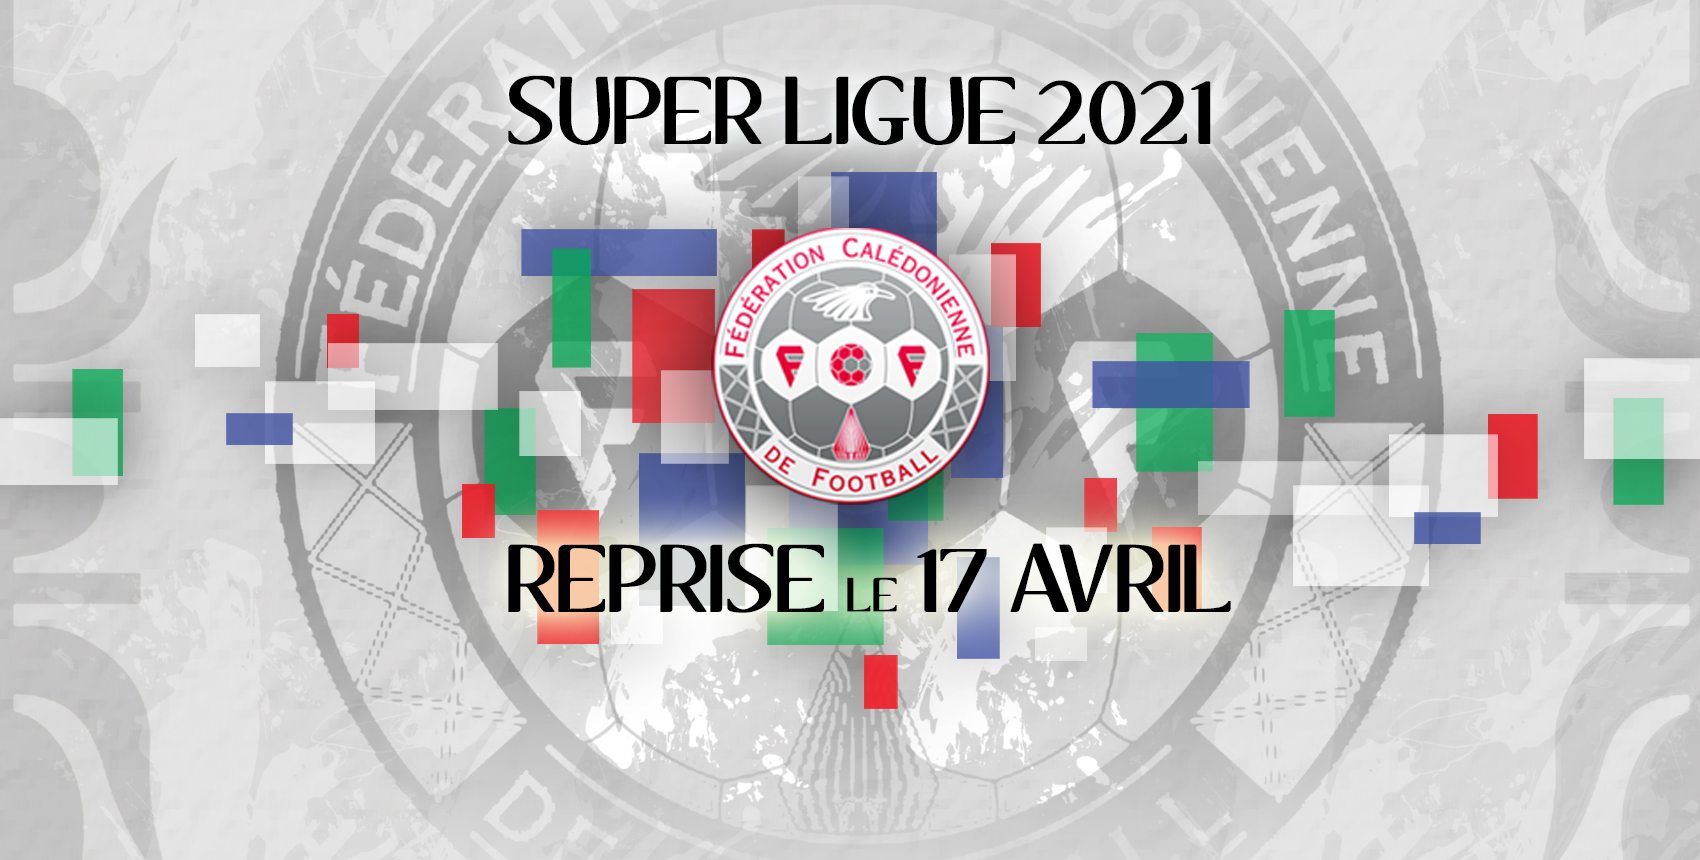 CALENDRIER OFFICIEL de la SUPER LIGUE 2021